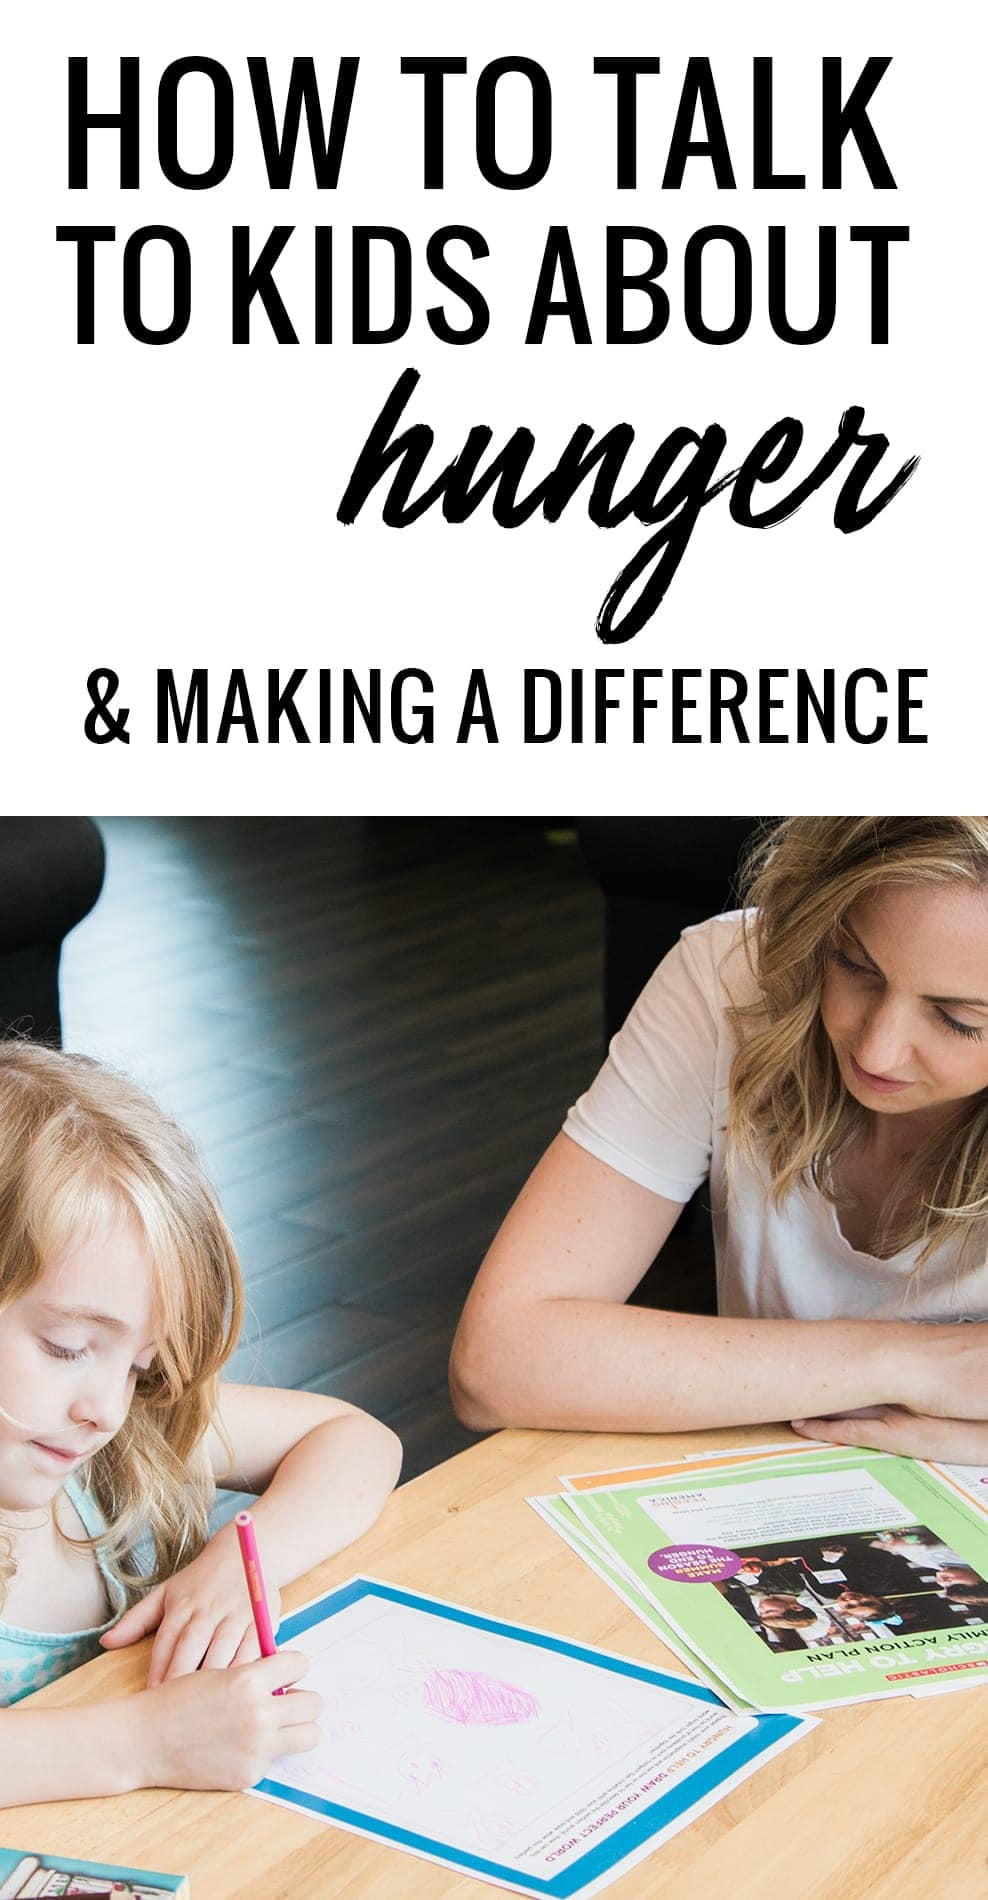 How to talk to your kids about child hunger and how to make a difference